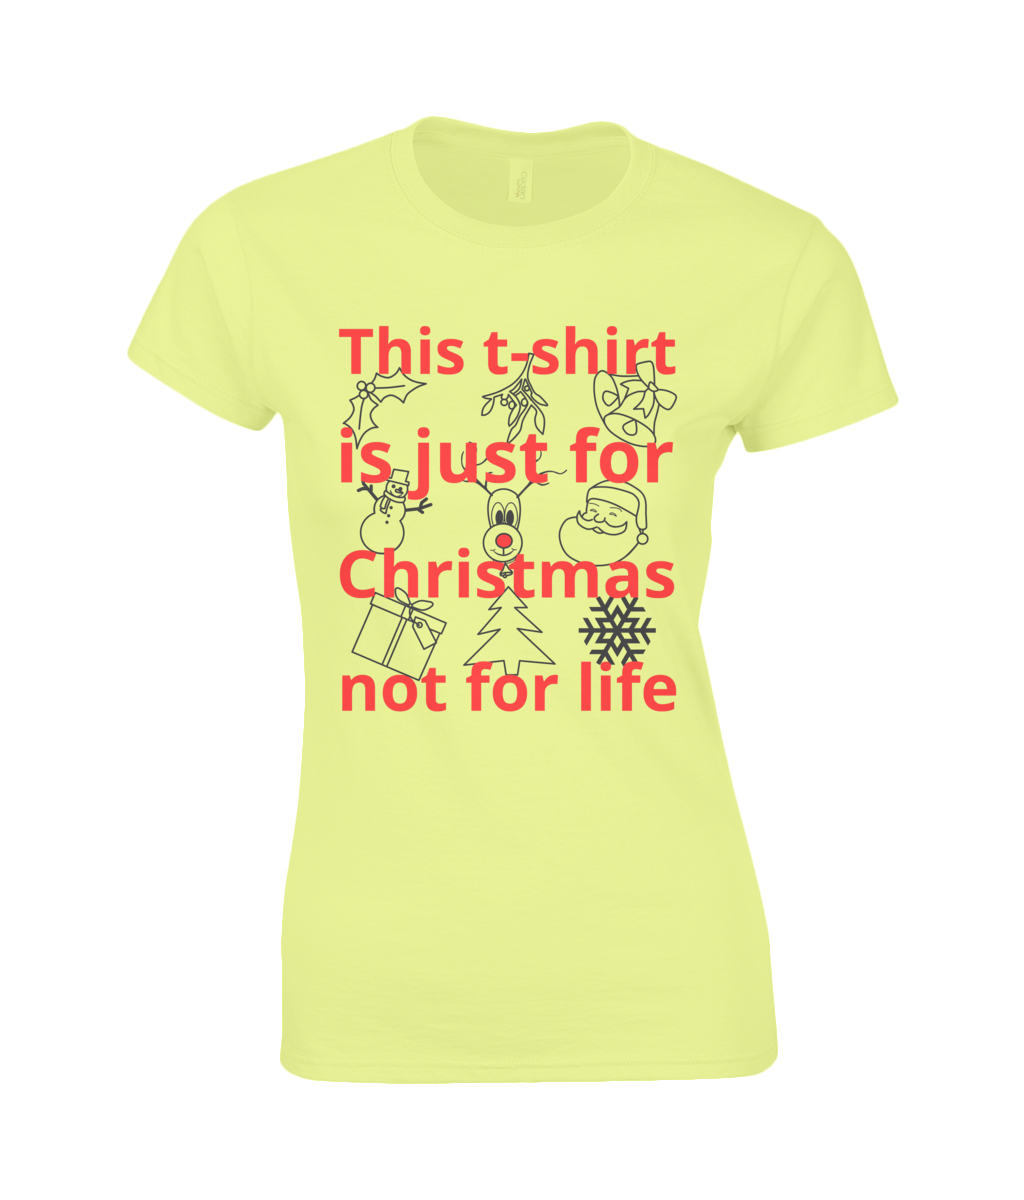 This t-shirt is just for Christmas not for life